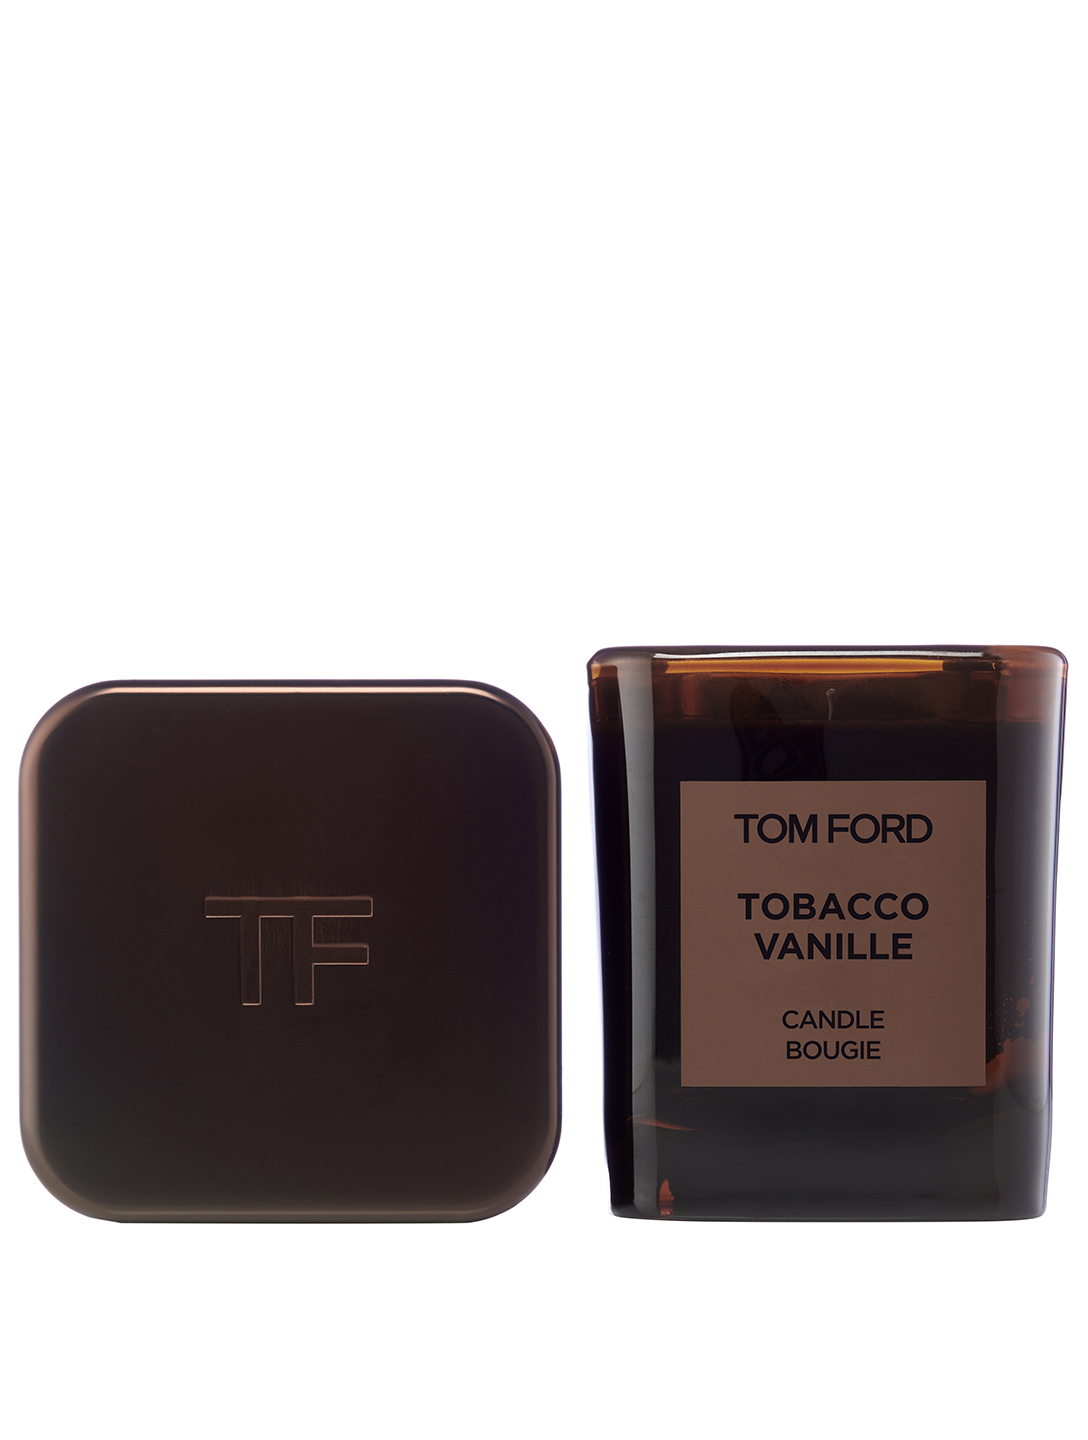 TOM FORD Tobacco Vanille Private Blend Candle Beauty